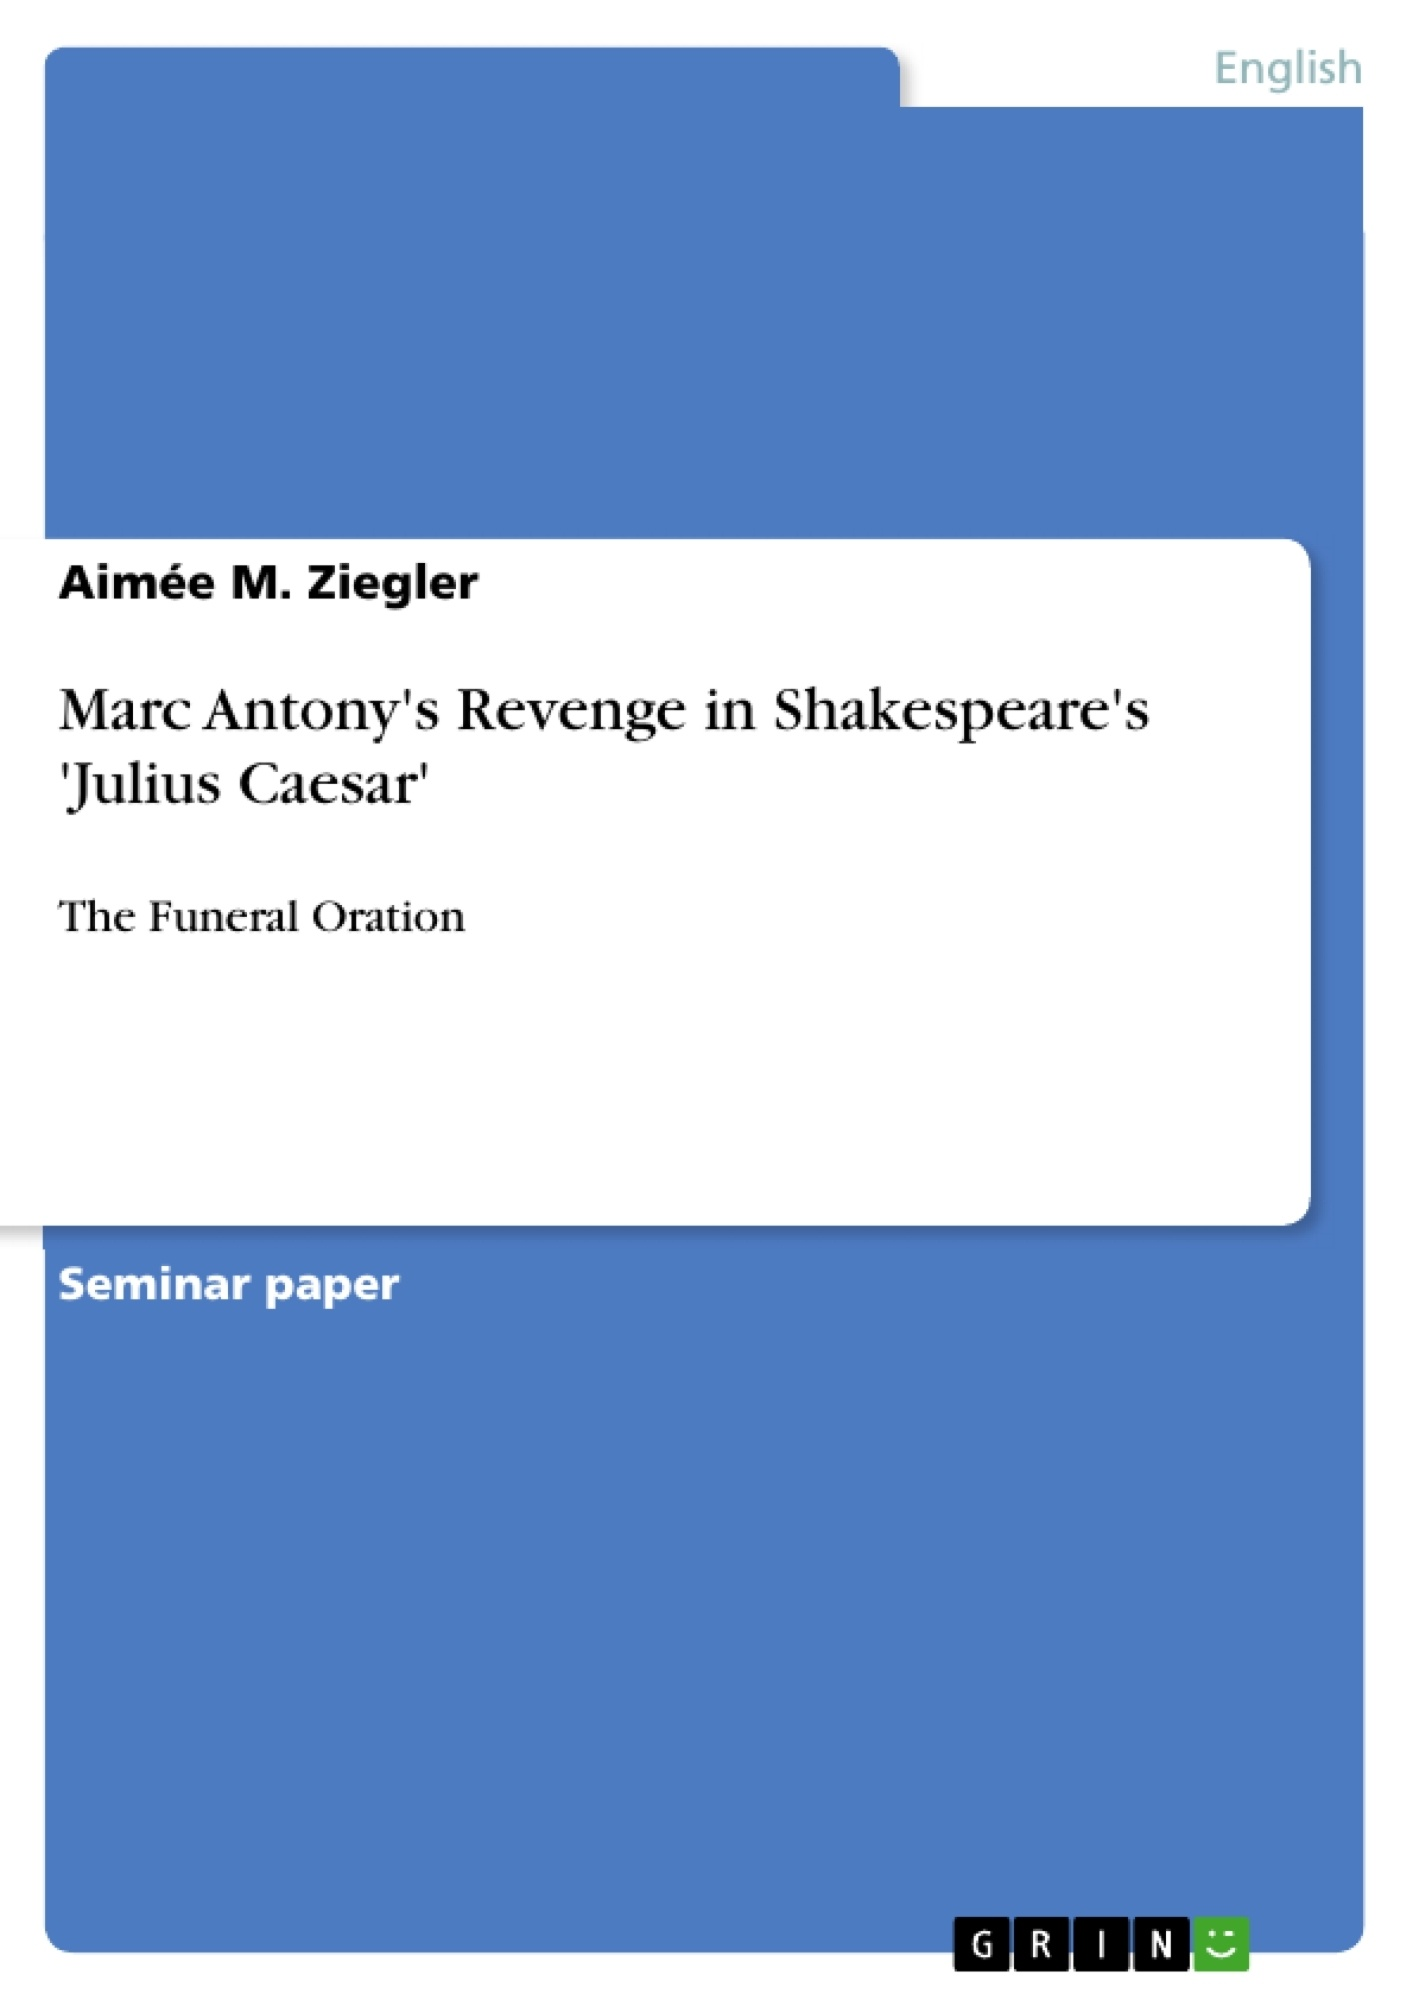 marc antony s revenge in shakespeare s julius caesar publish marc antony s revenge in shakespeare s julius caesar publish your master s thesis bachelor s thesis essay or term paper